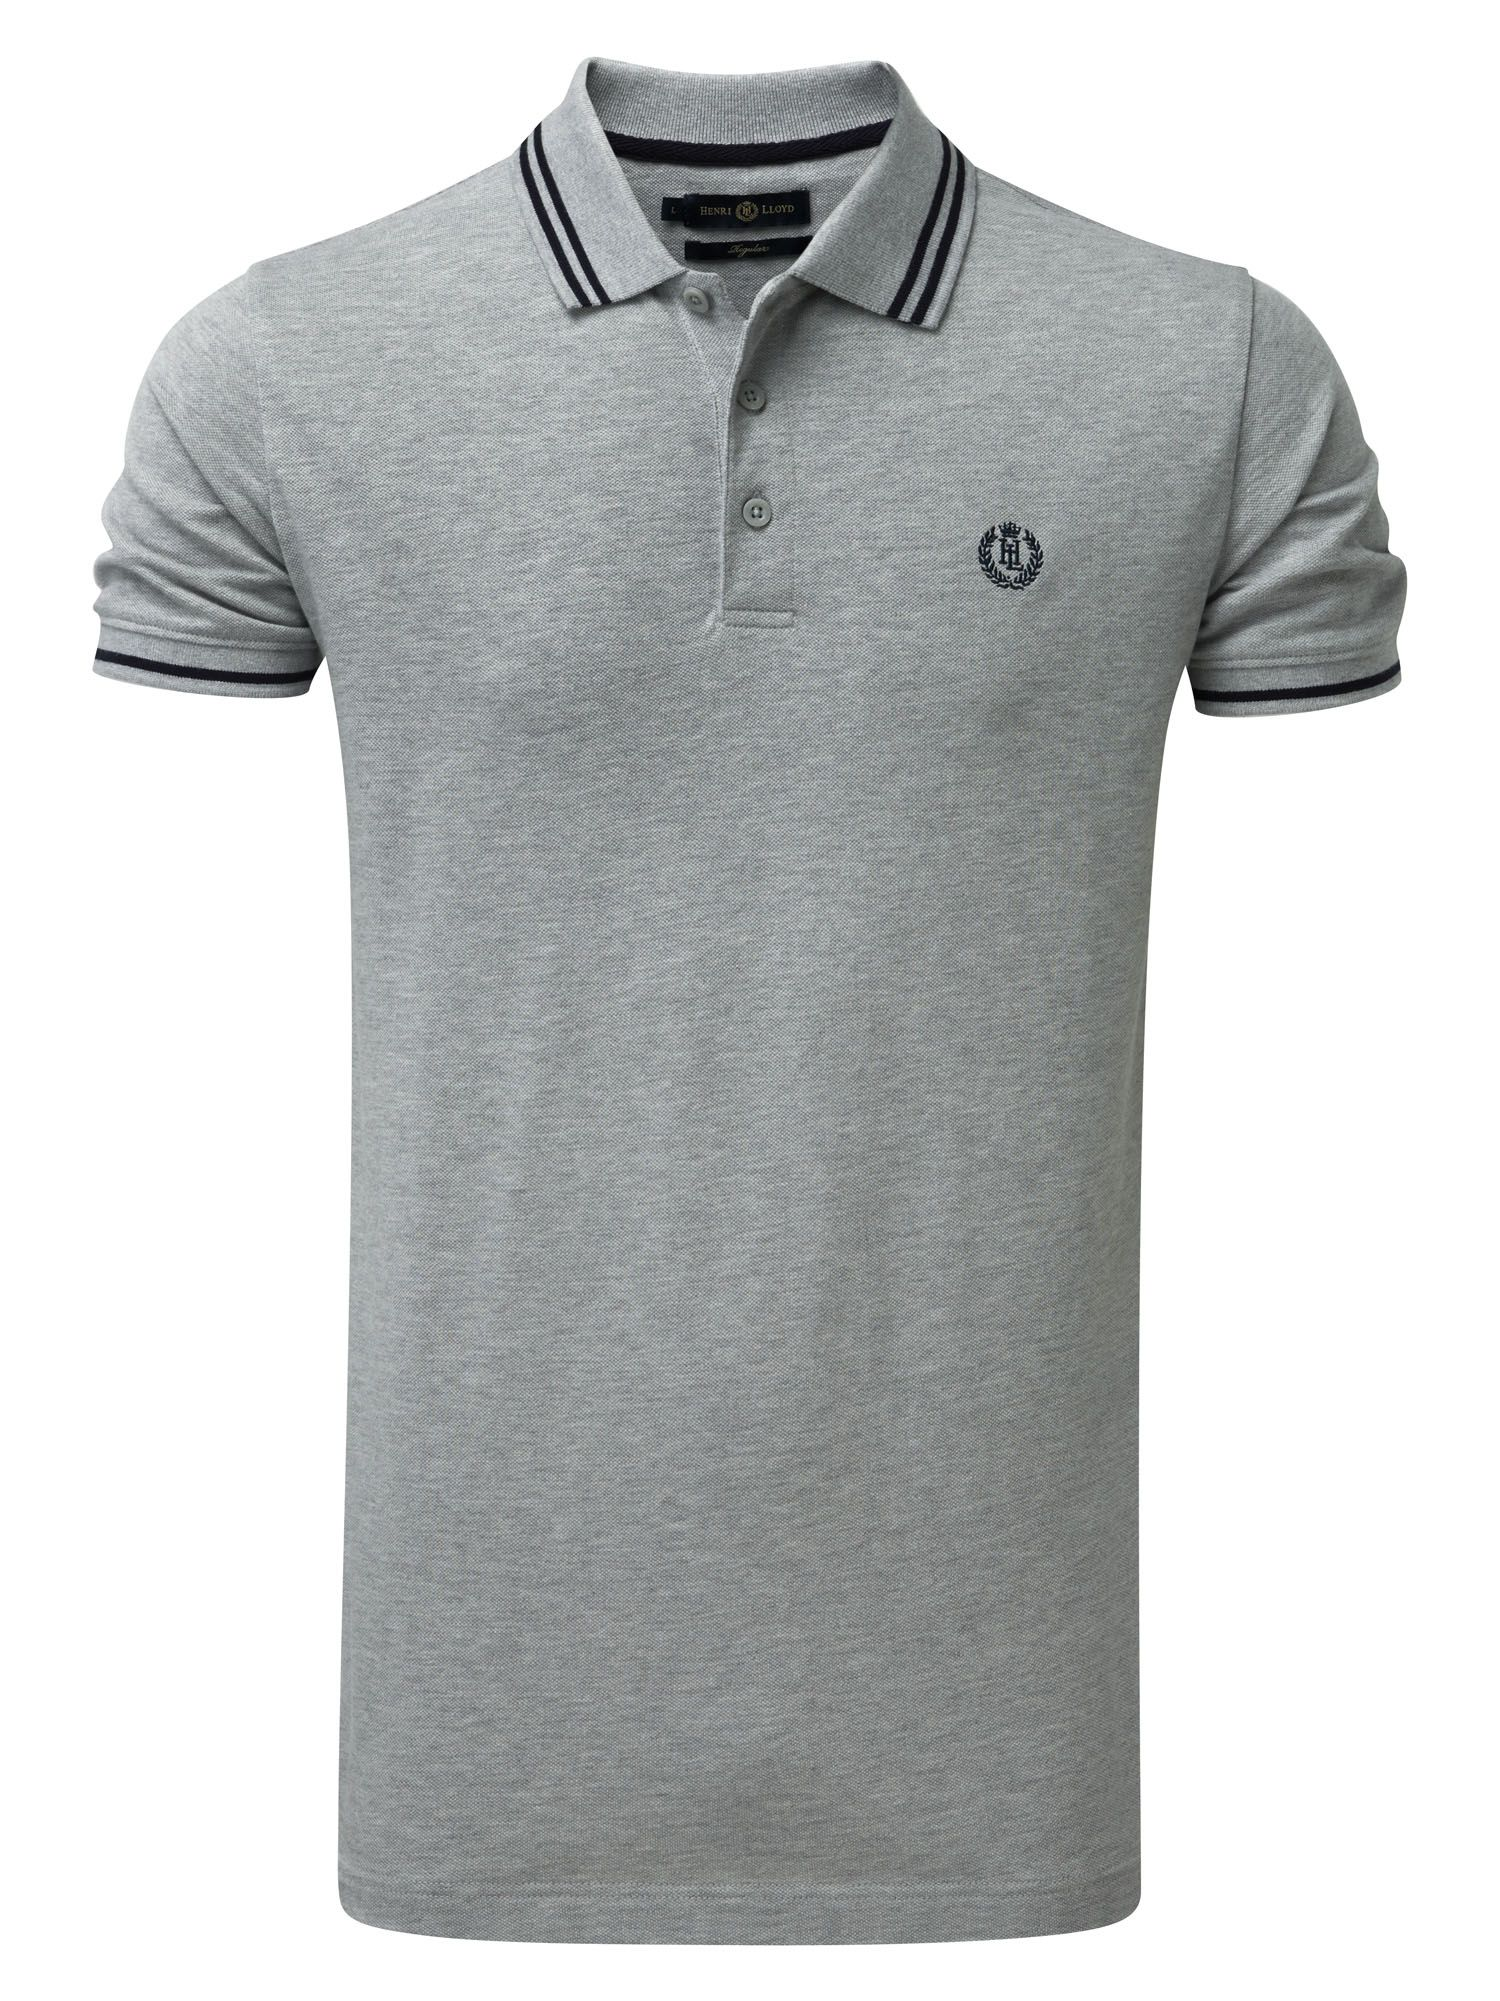 Men's Henri Lloyd Byron Regular Polo, Grey